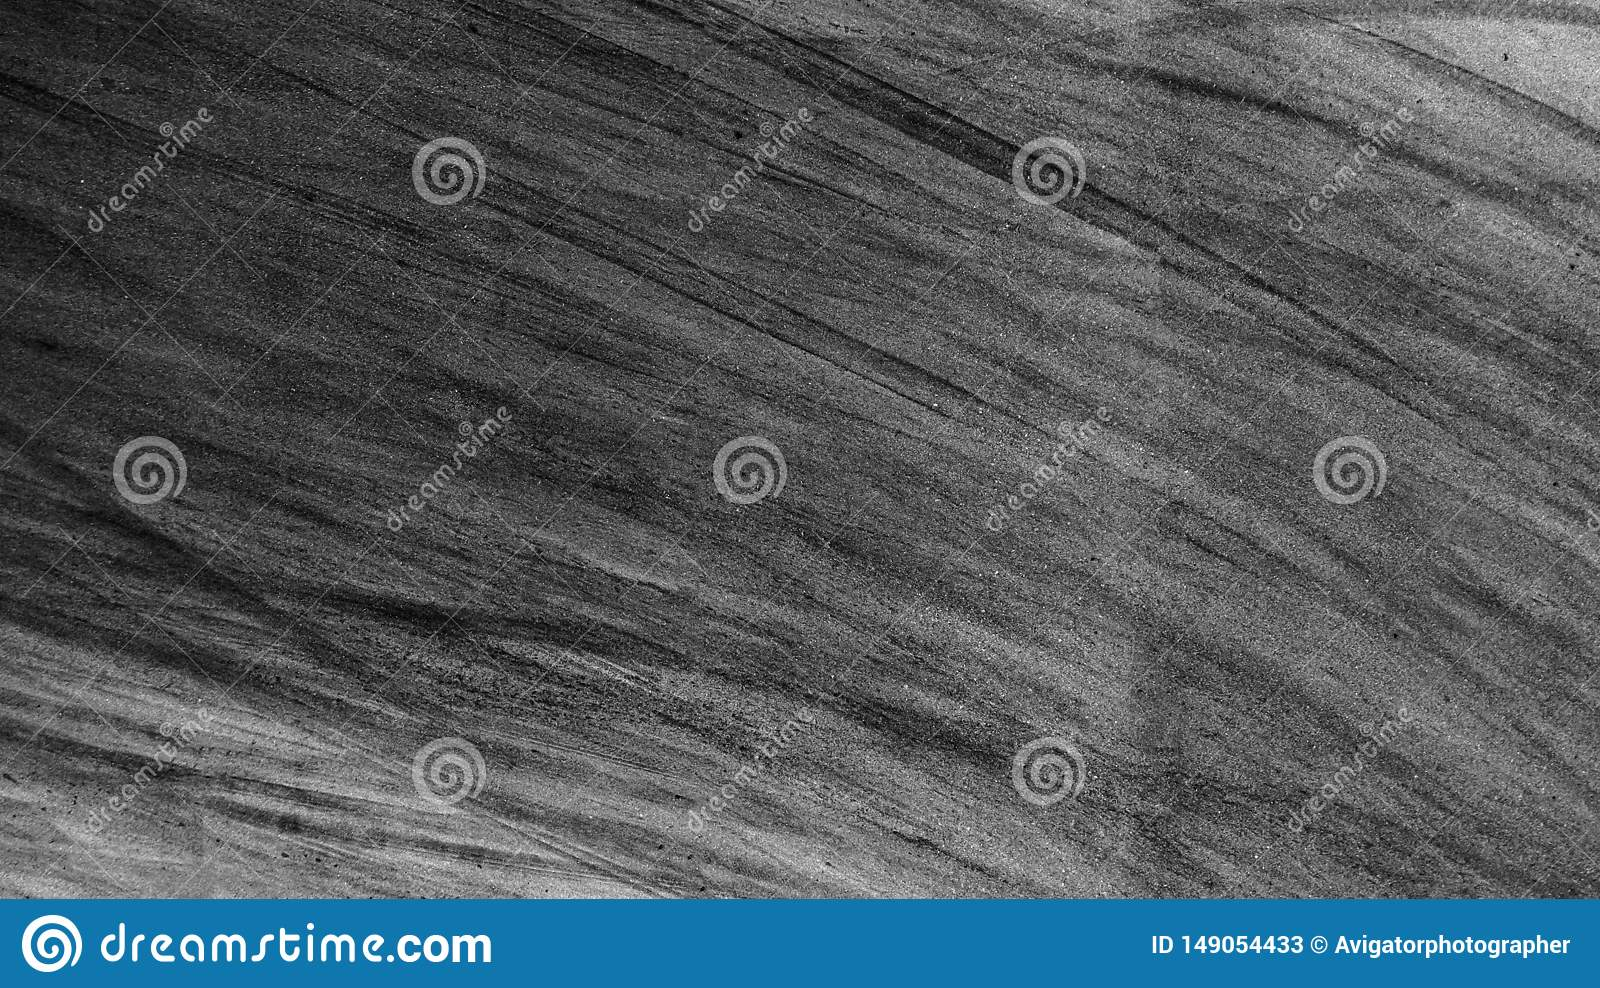 Aerial view background with tire marks on race track, texture of tire marks